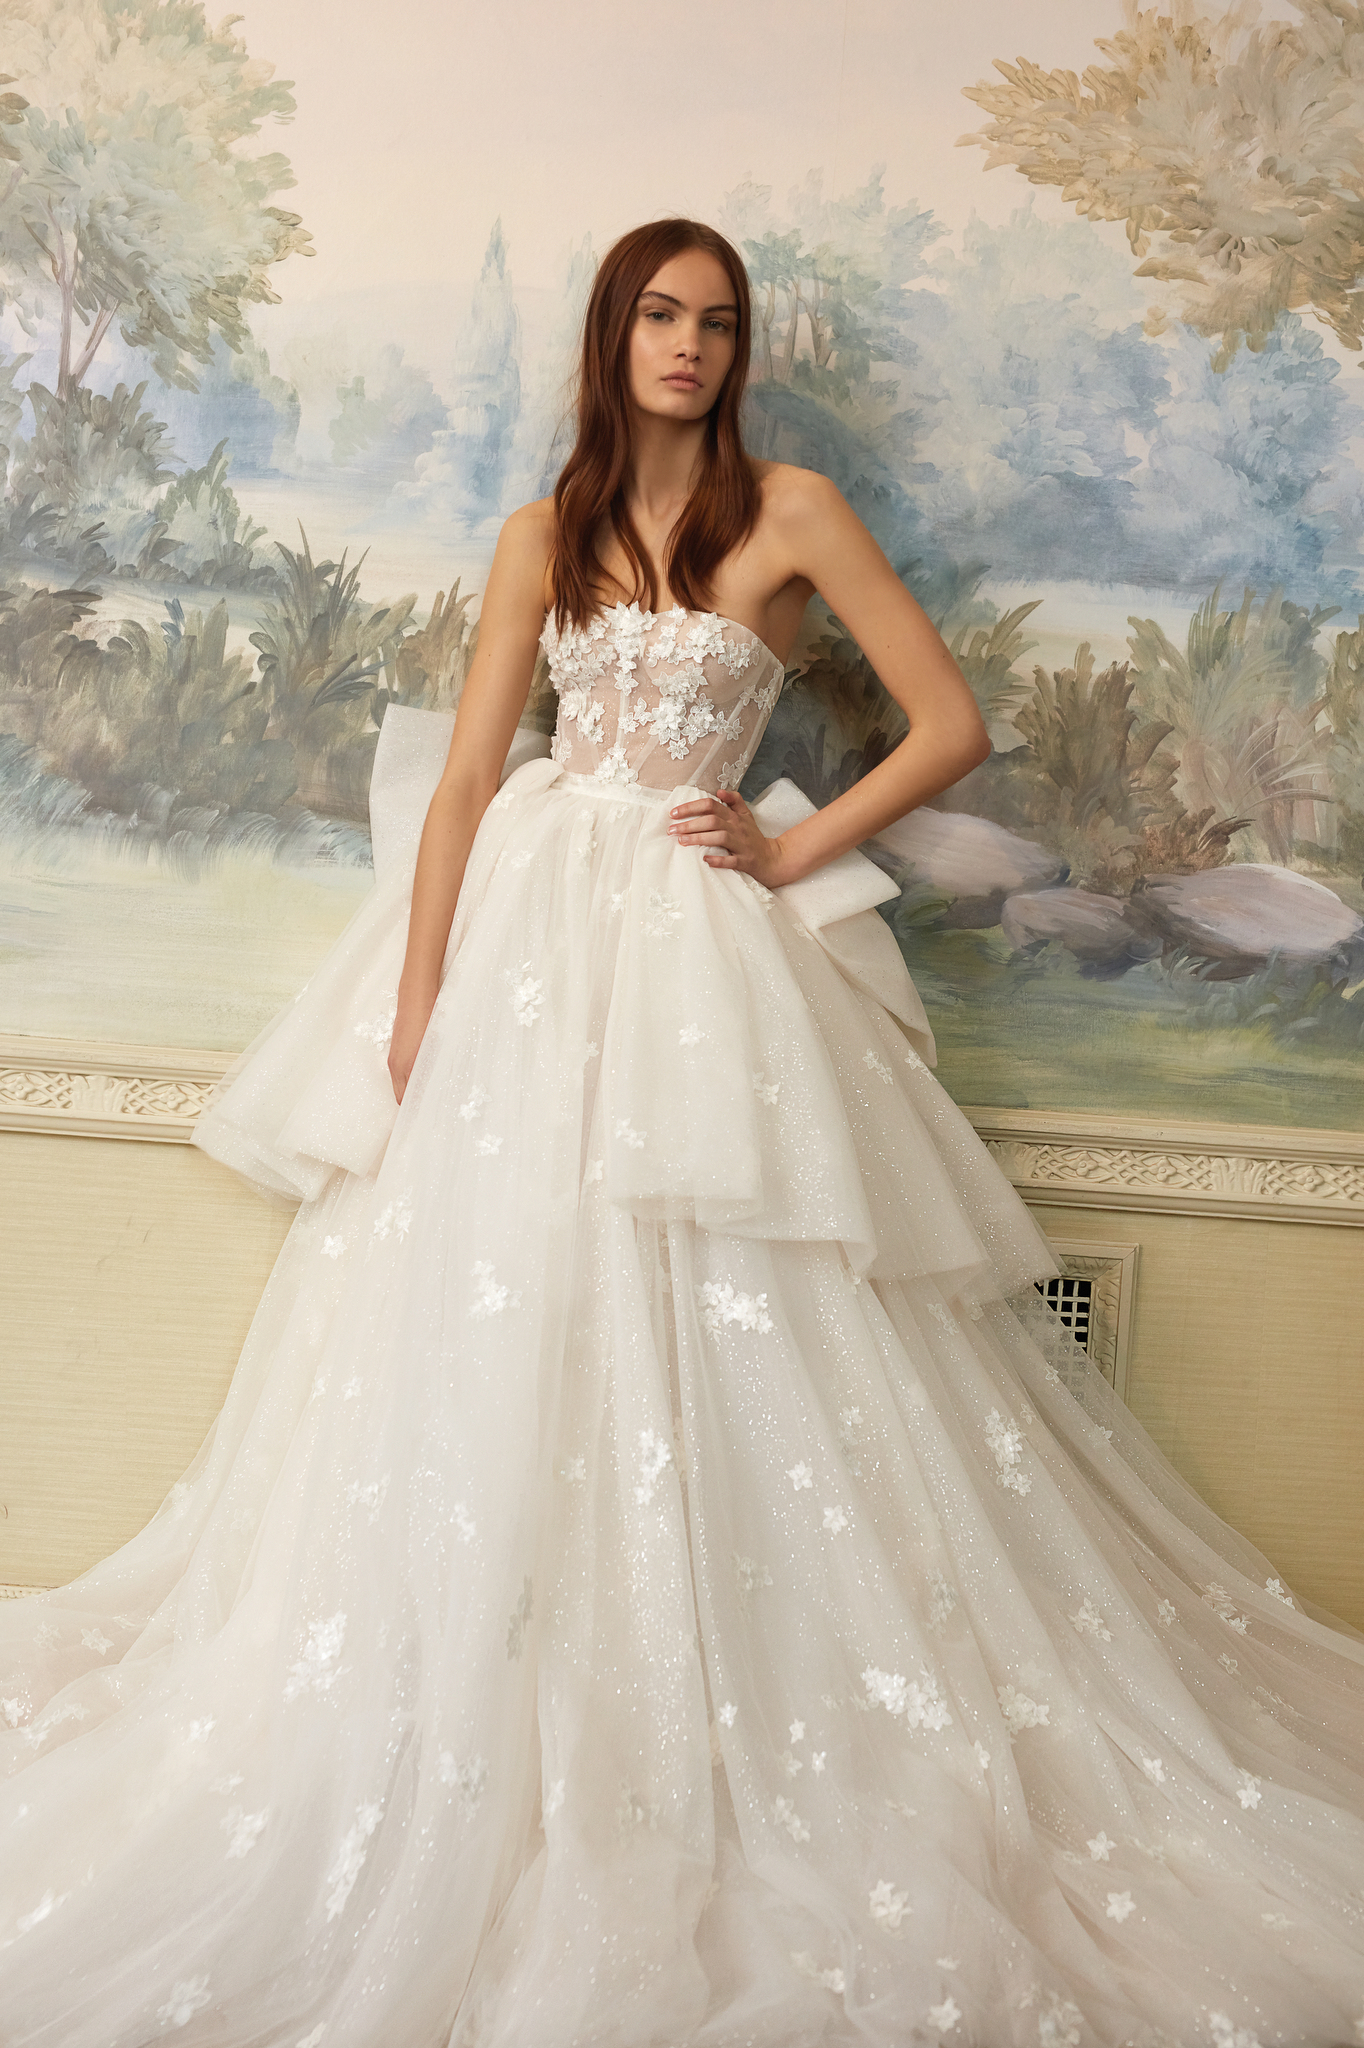 Galia Lahav Bridal Fall 2021